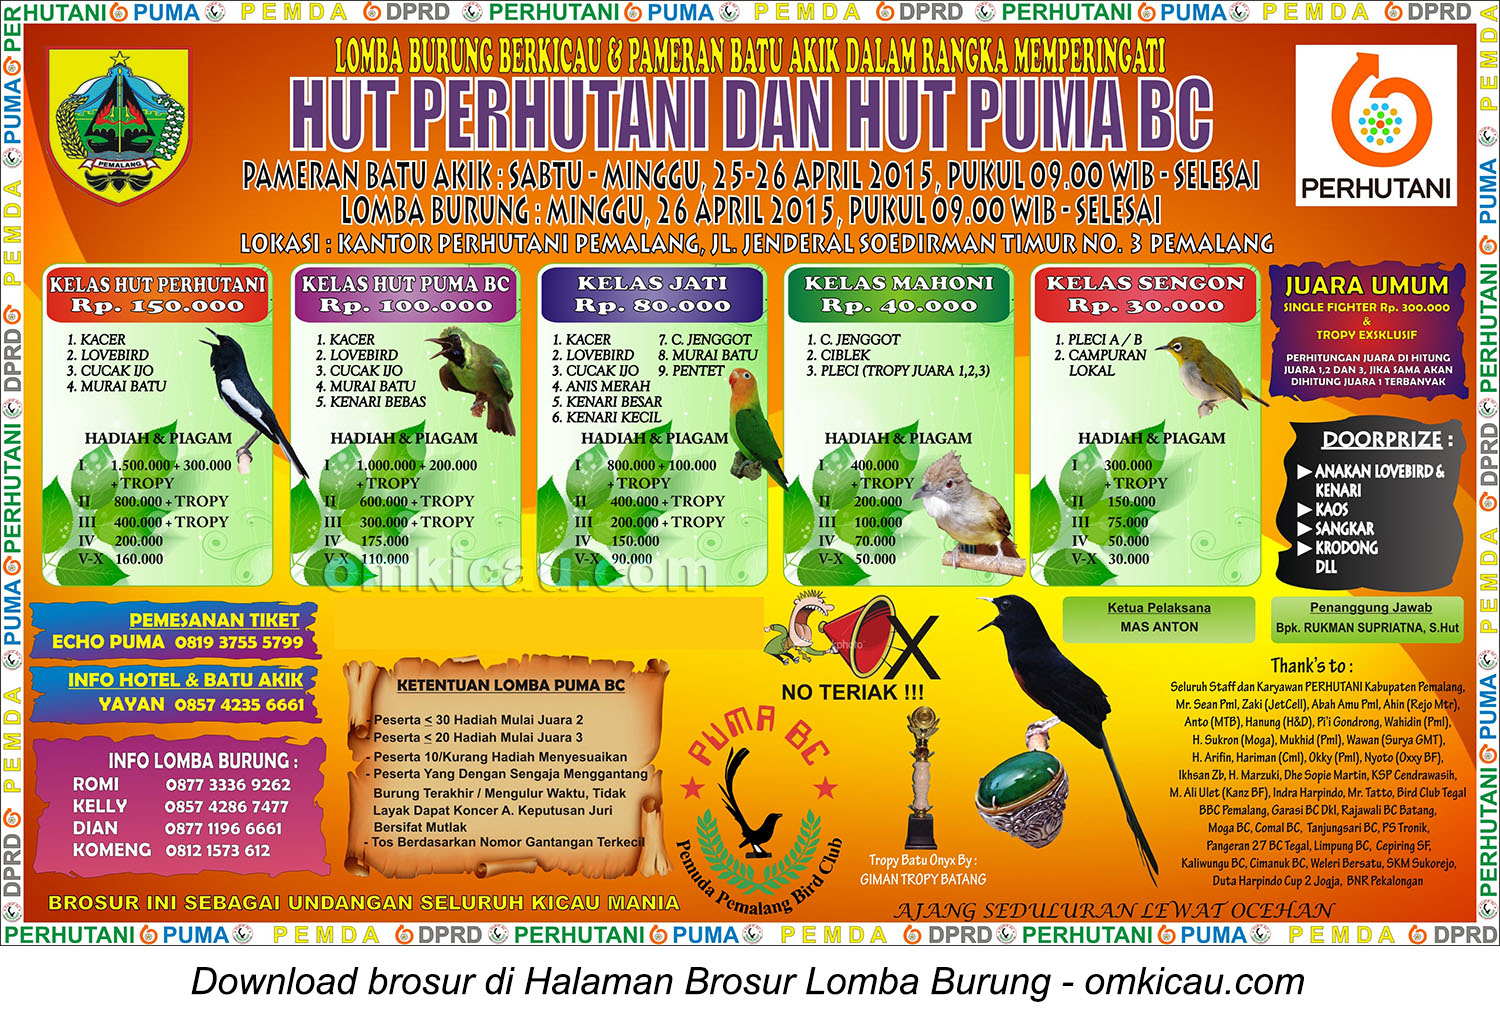 Brosur Lomba Burung HUT Perhutani - HUT Puma BC, Pemalang, 26 April 2015